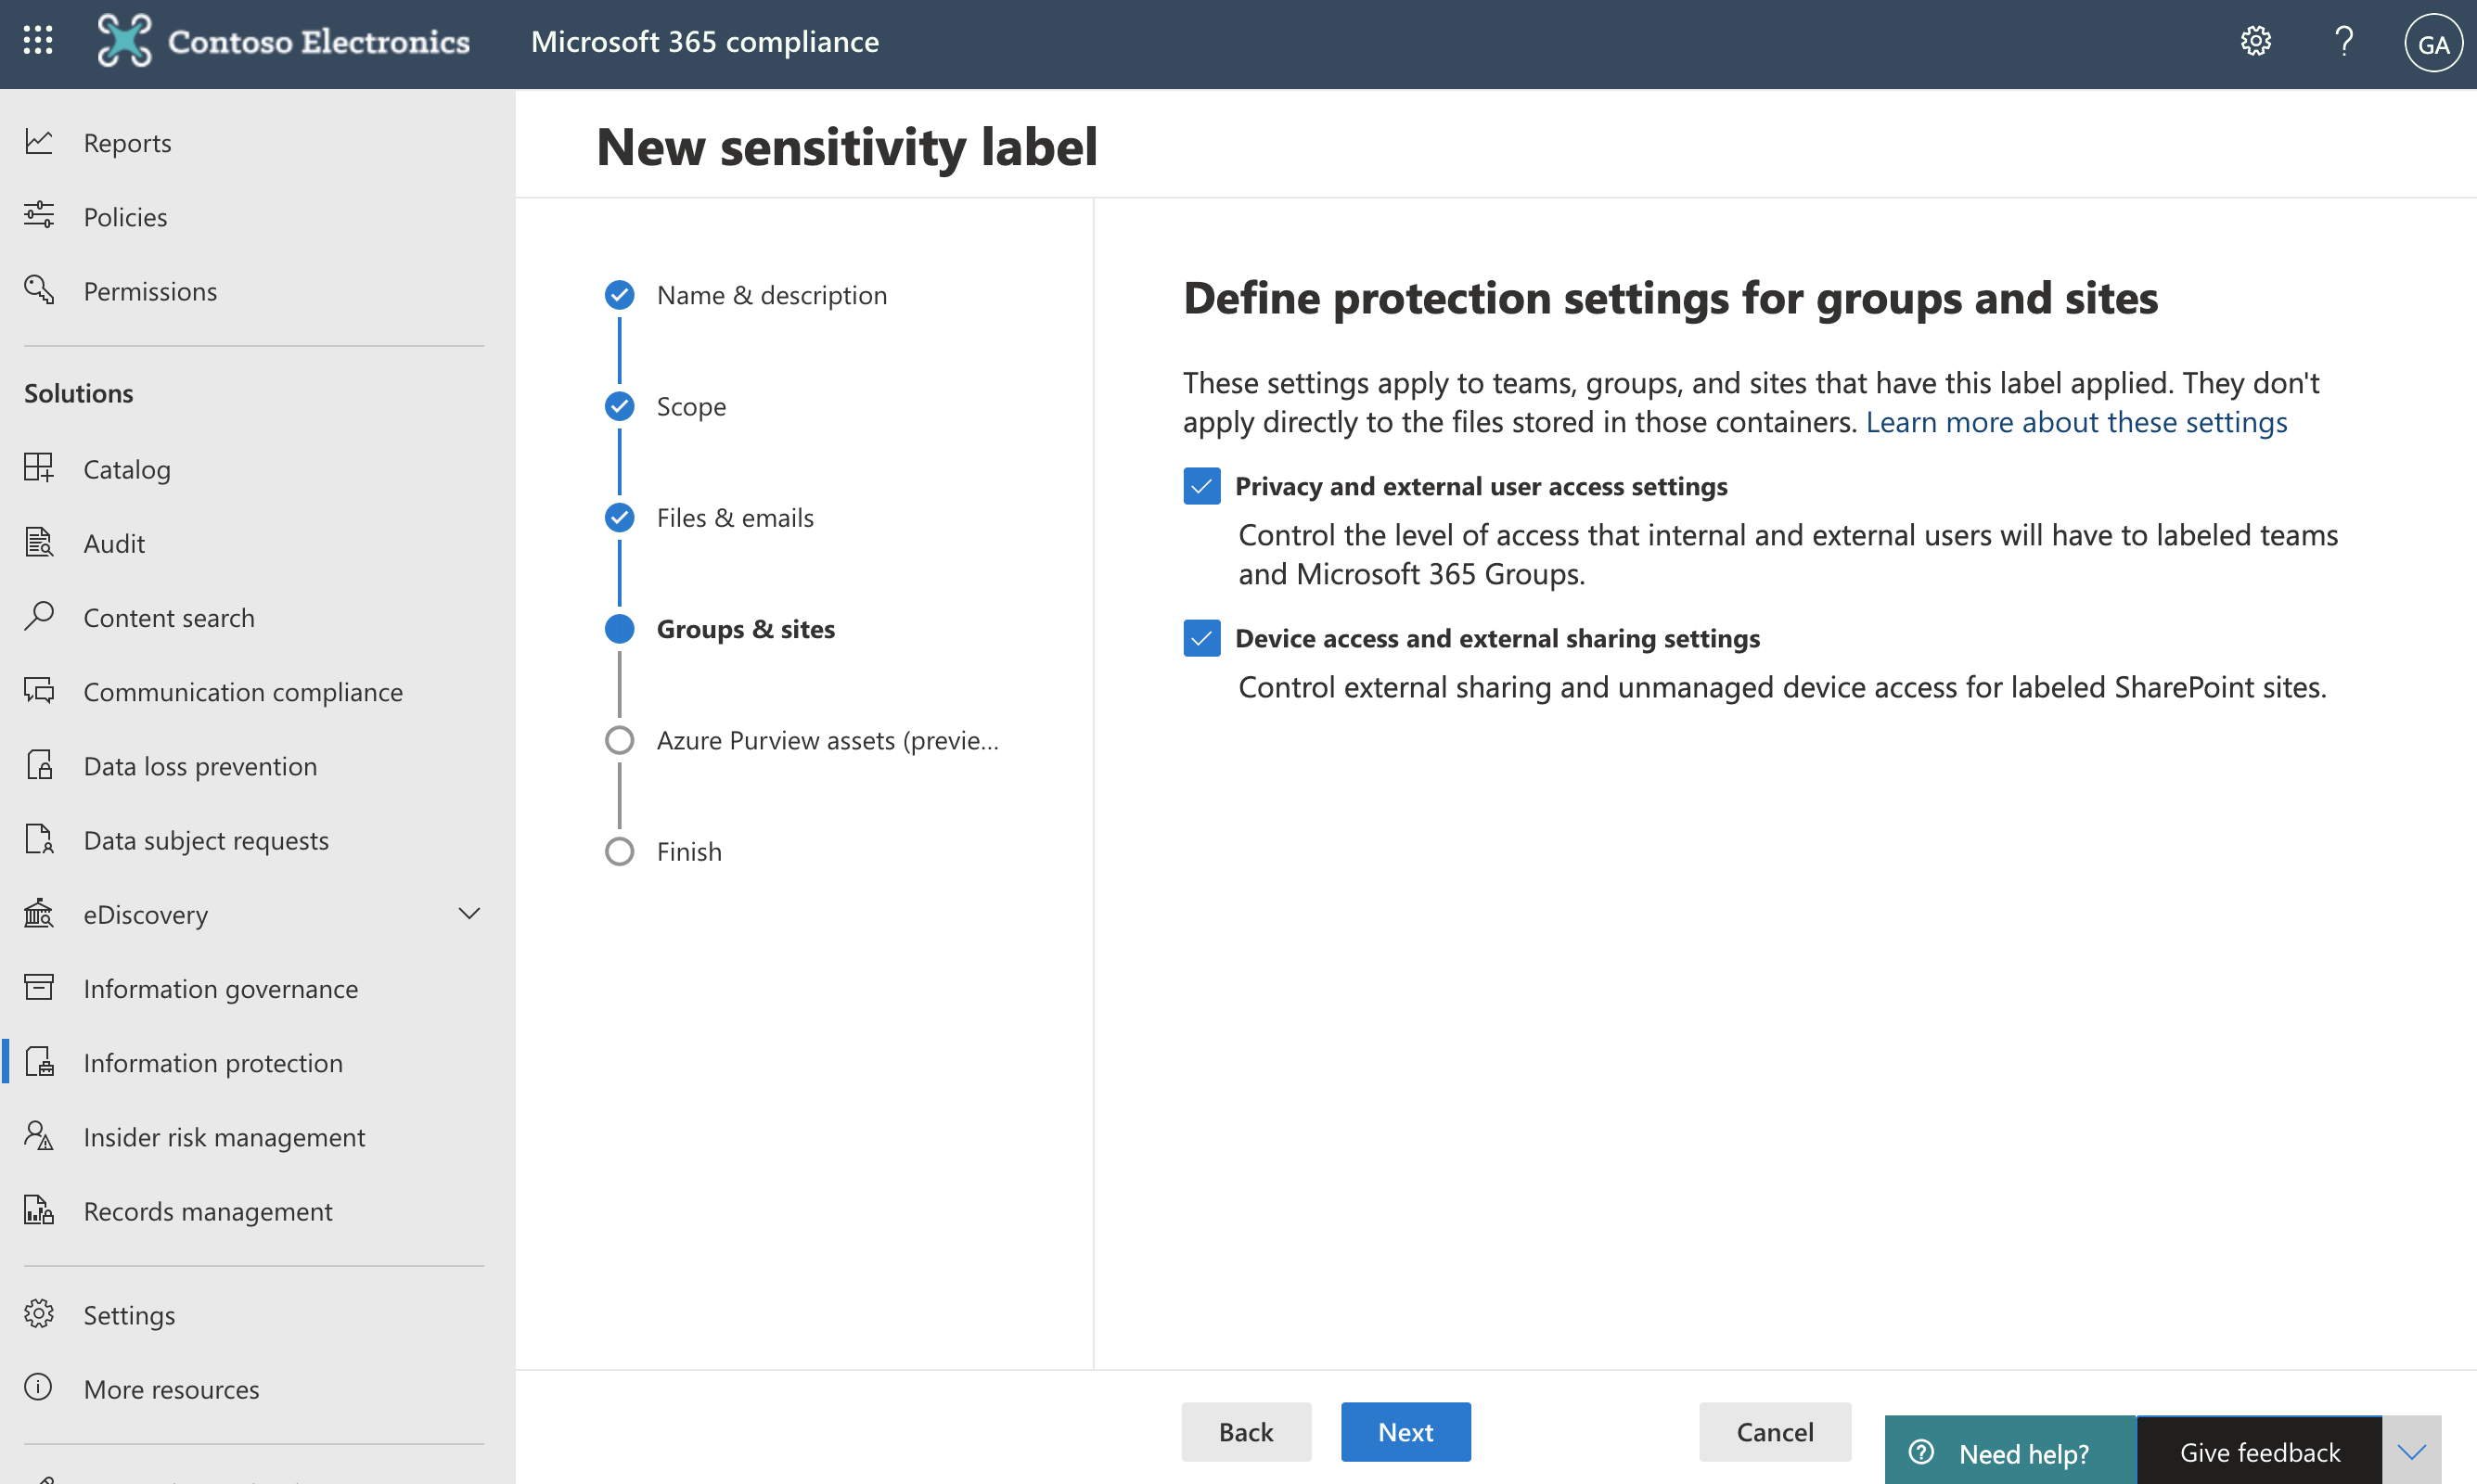 Screenshot of Define protection settings for groups and sites page.